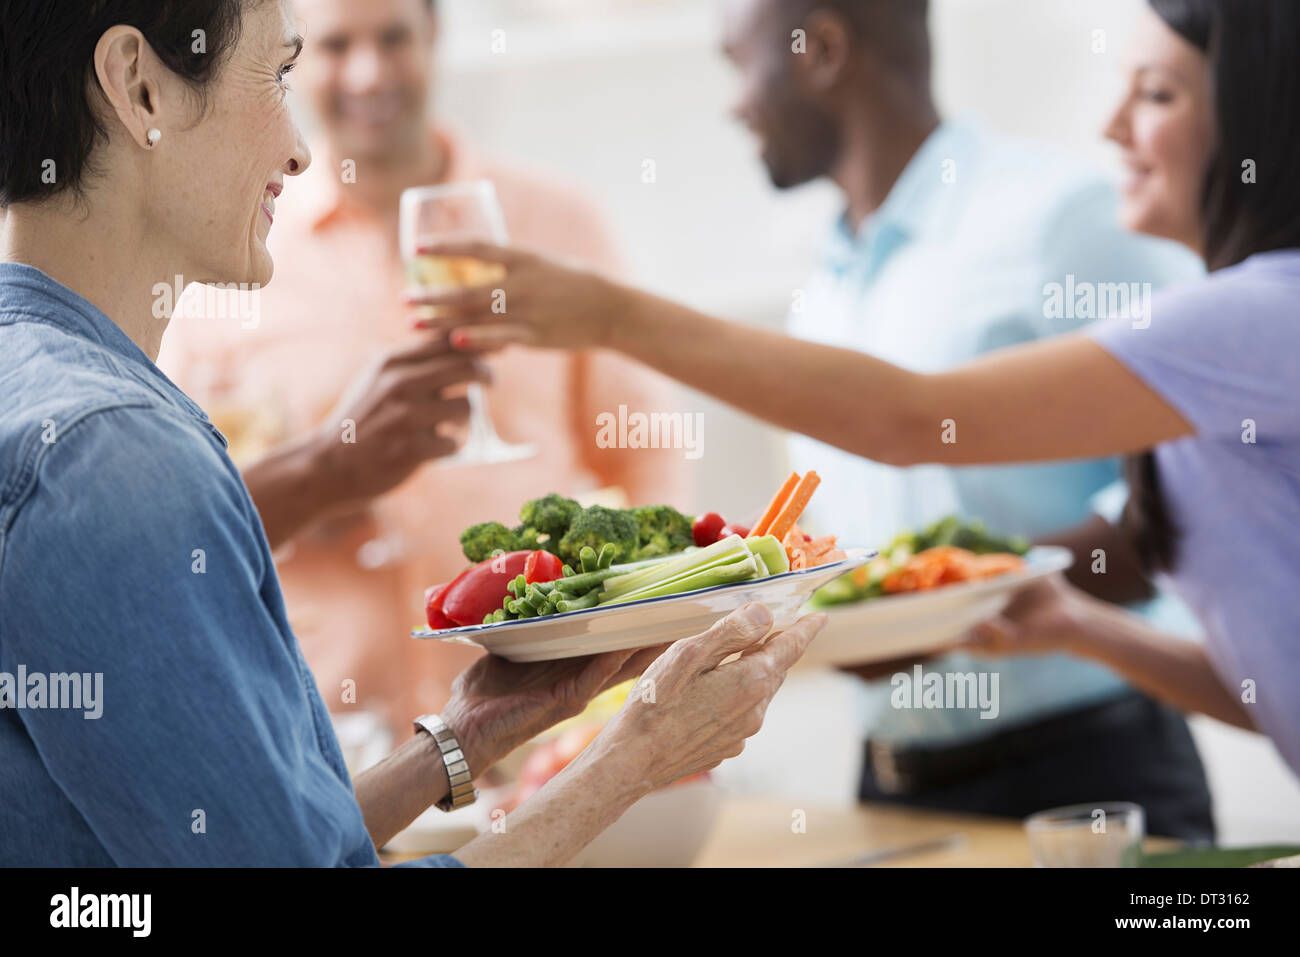 A working lunch a salad buffet A woman holding out a glass of wine and a plate of food - Stock Image